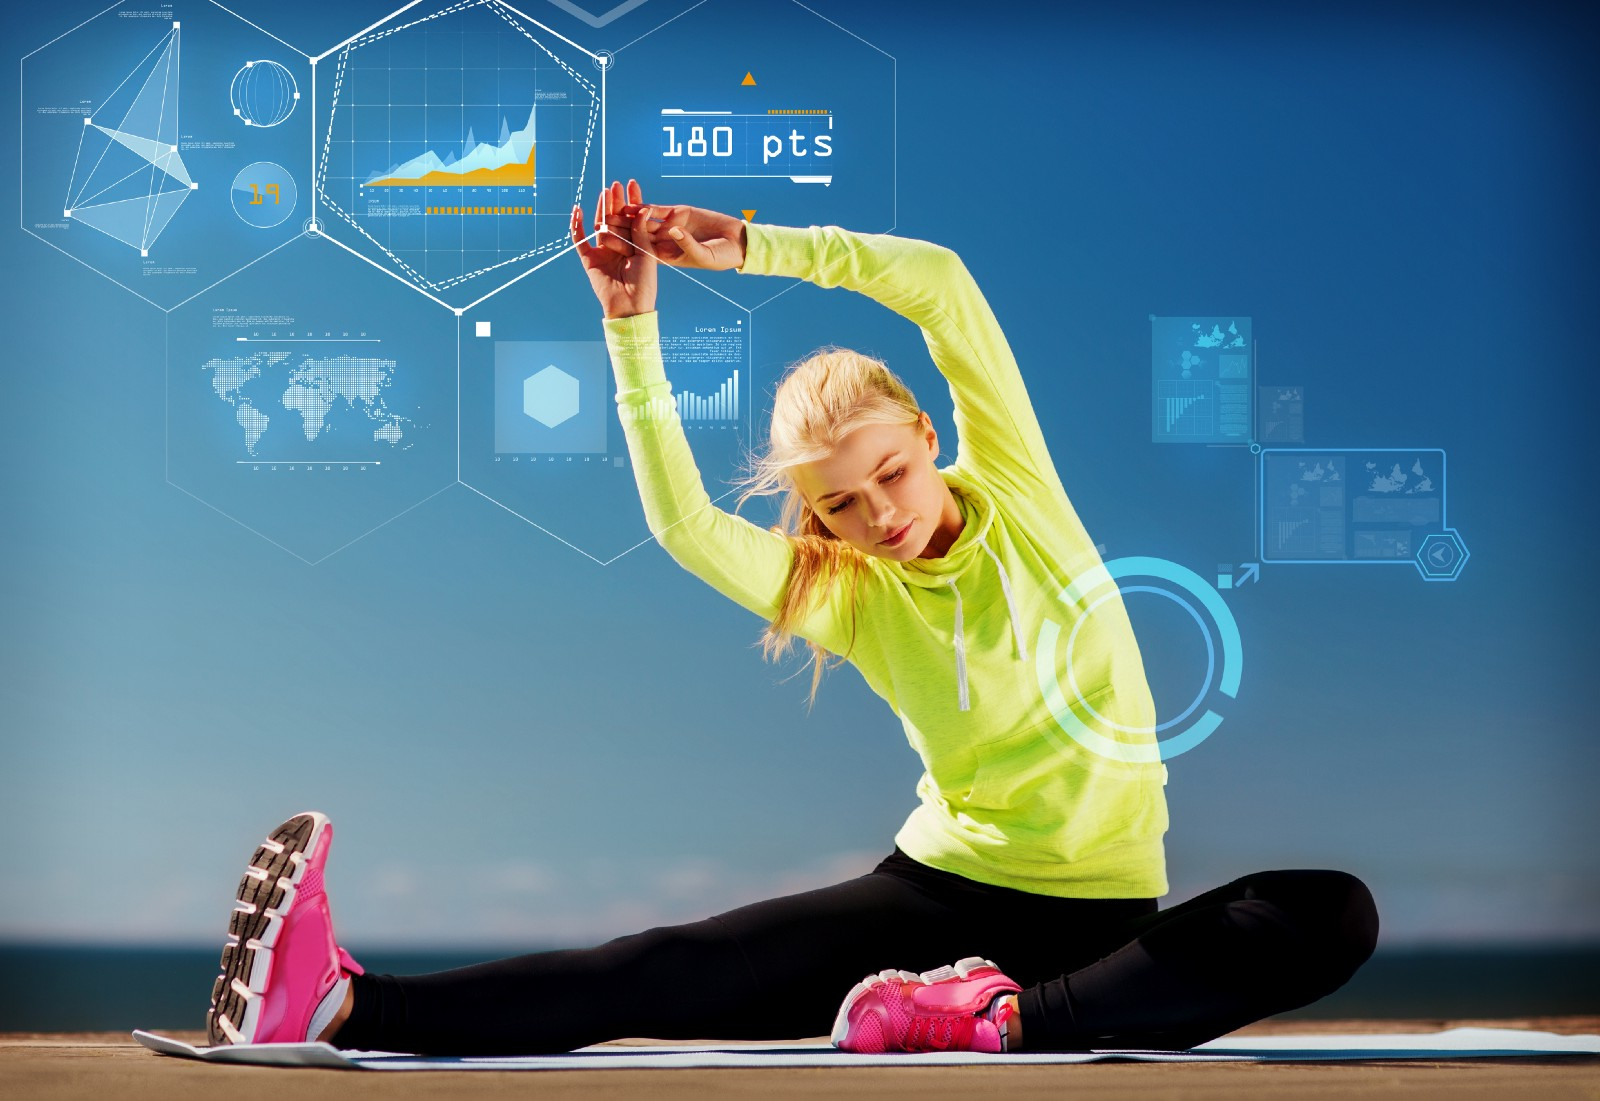 /how-sports-teams-athletes-and-fans-reap-the-rewards-of-big-data-22d07a85f7fc feature image